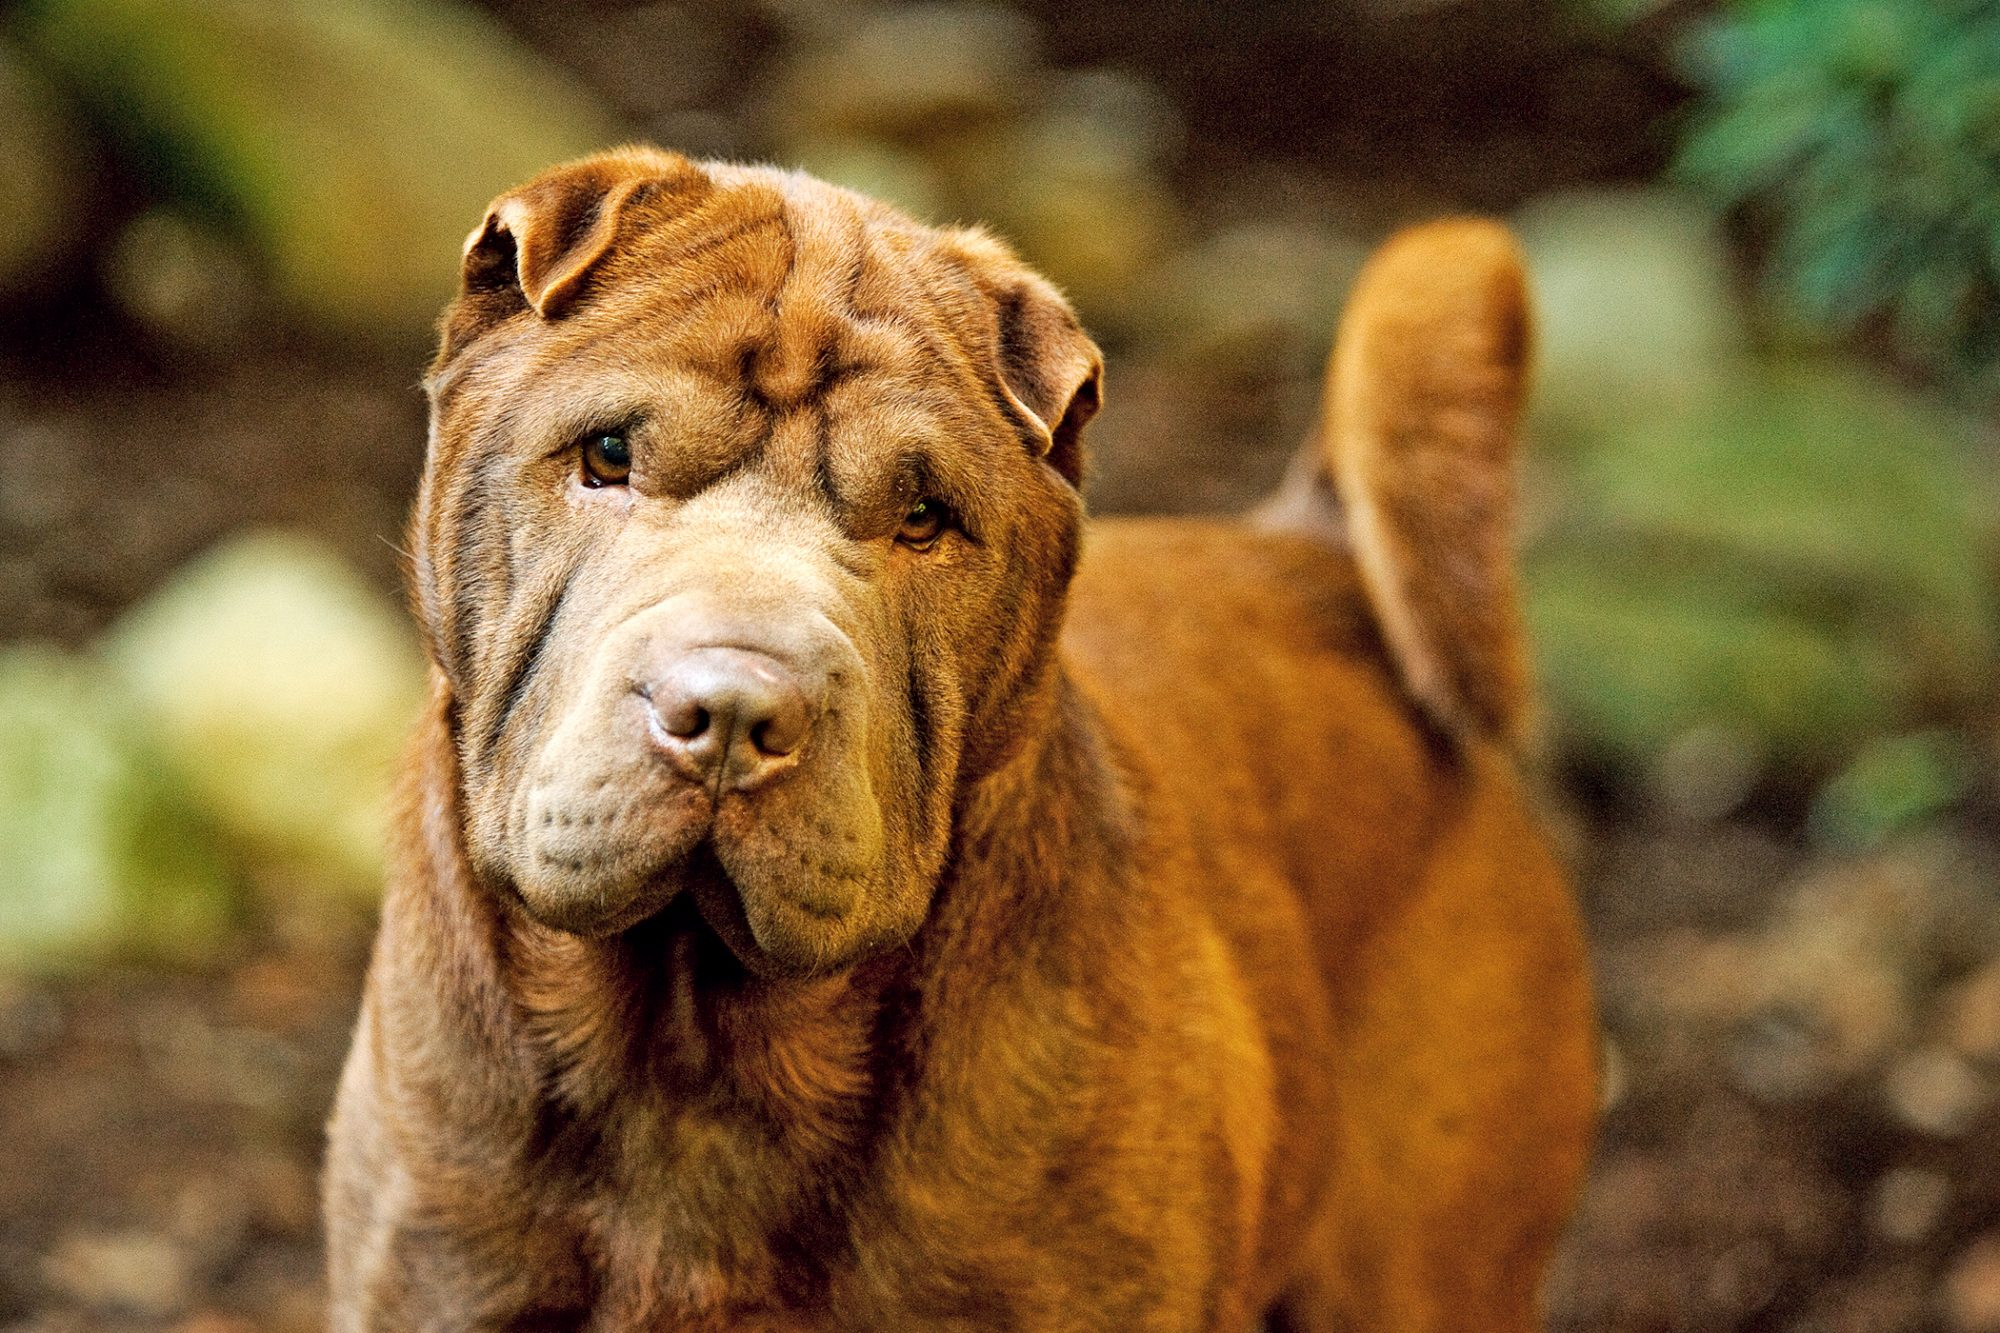 Tan shar-pei with curly tail portrait